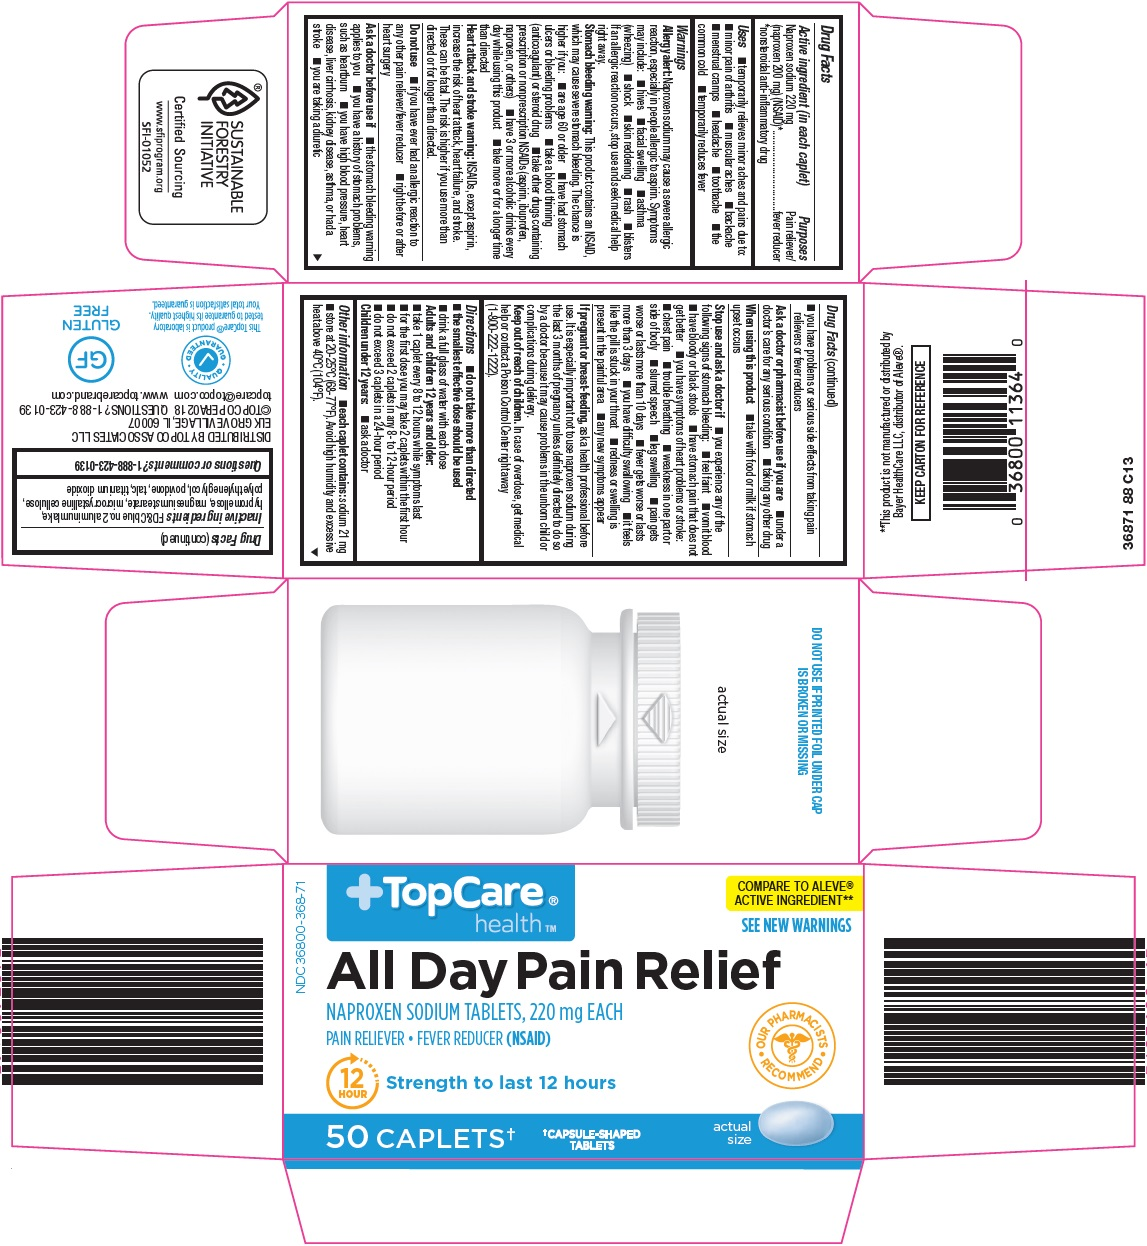 368-88-all-day-pain-relief.jpg